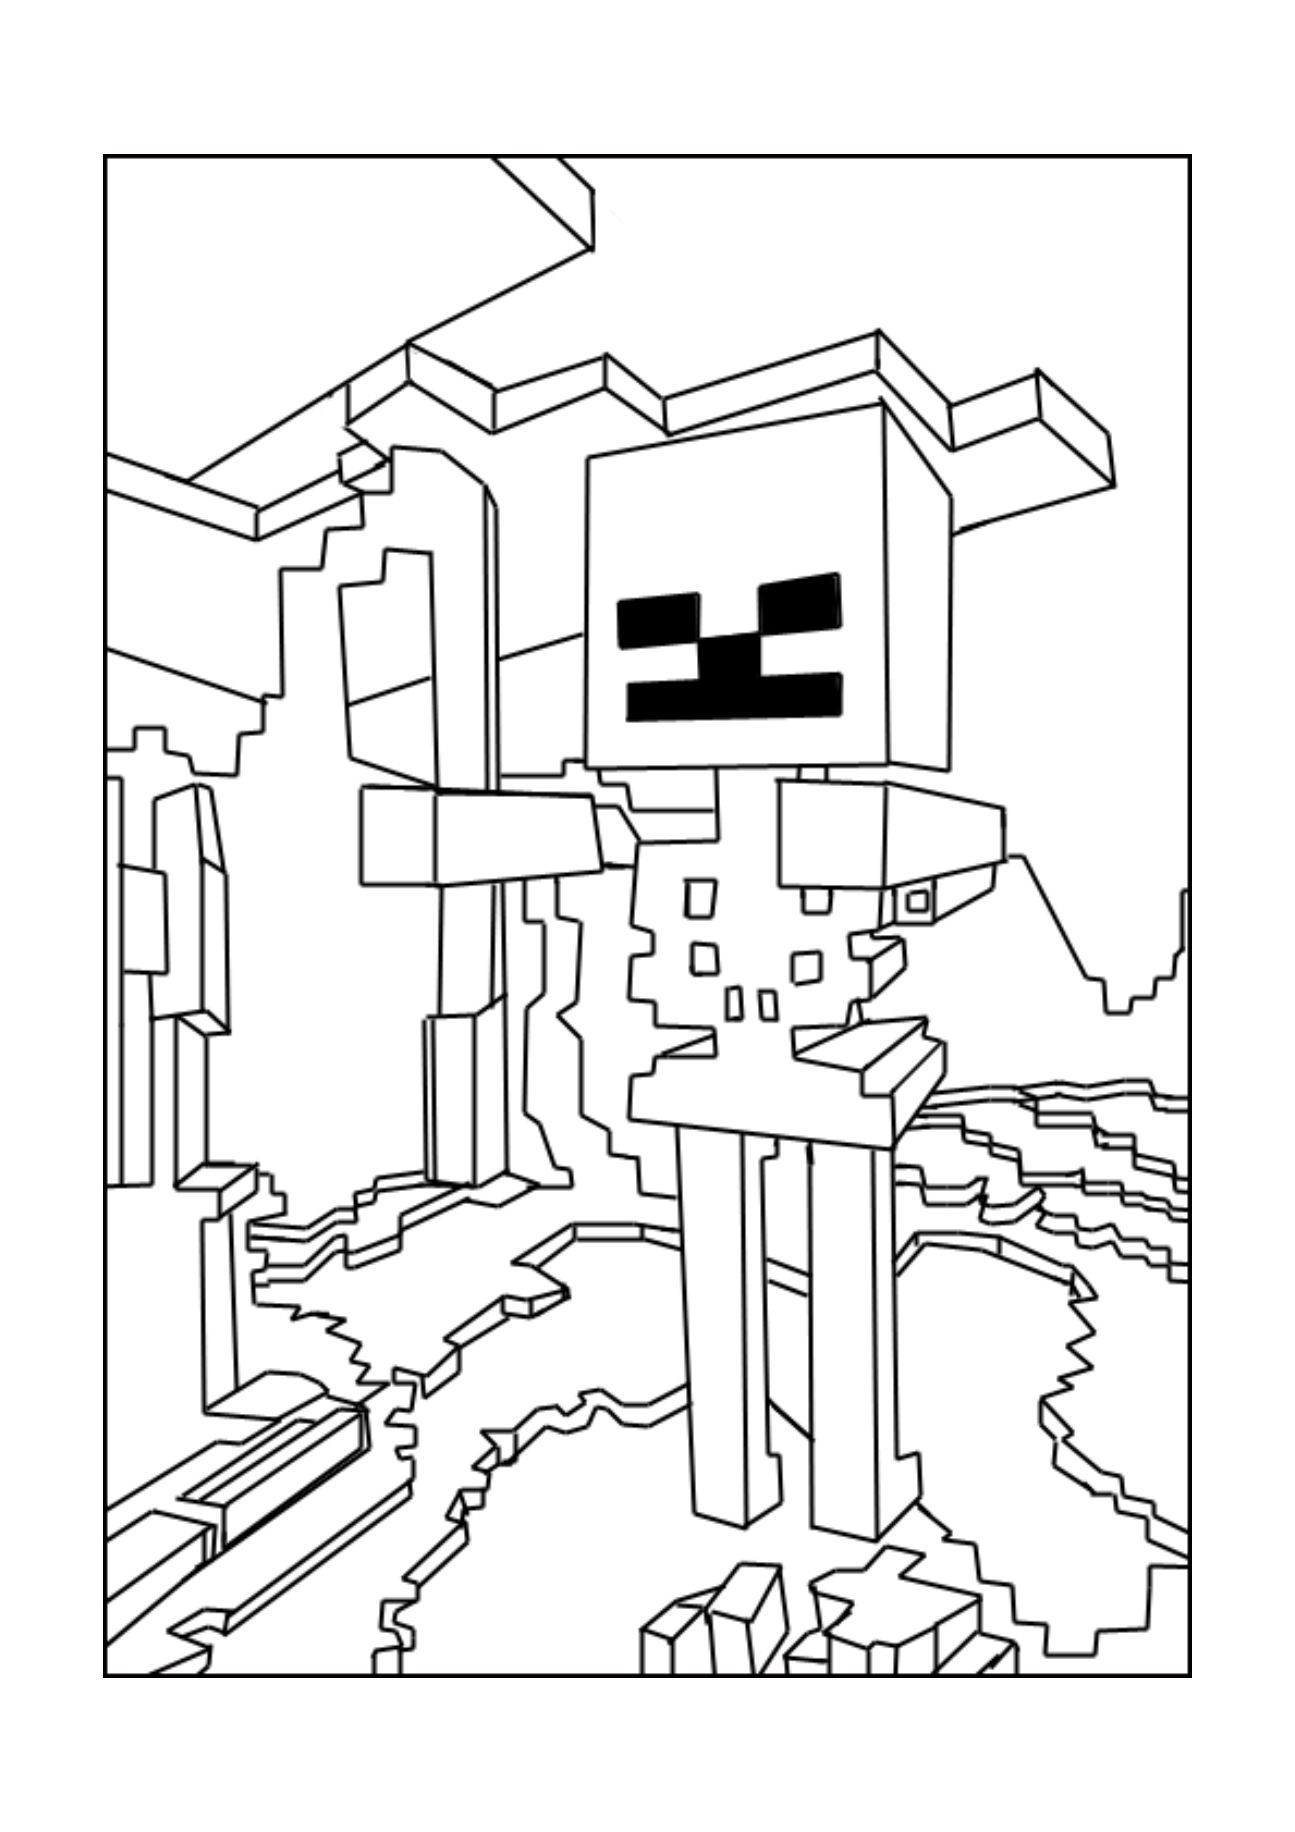 images of minecraft coloring pages minecraft coloring pages free large images of pages images coloring minecraft